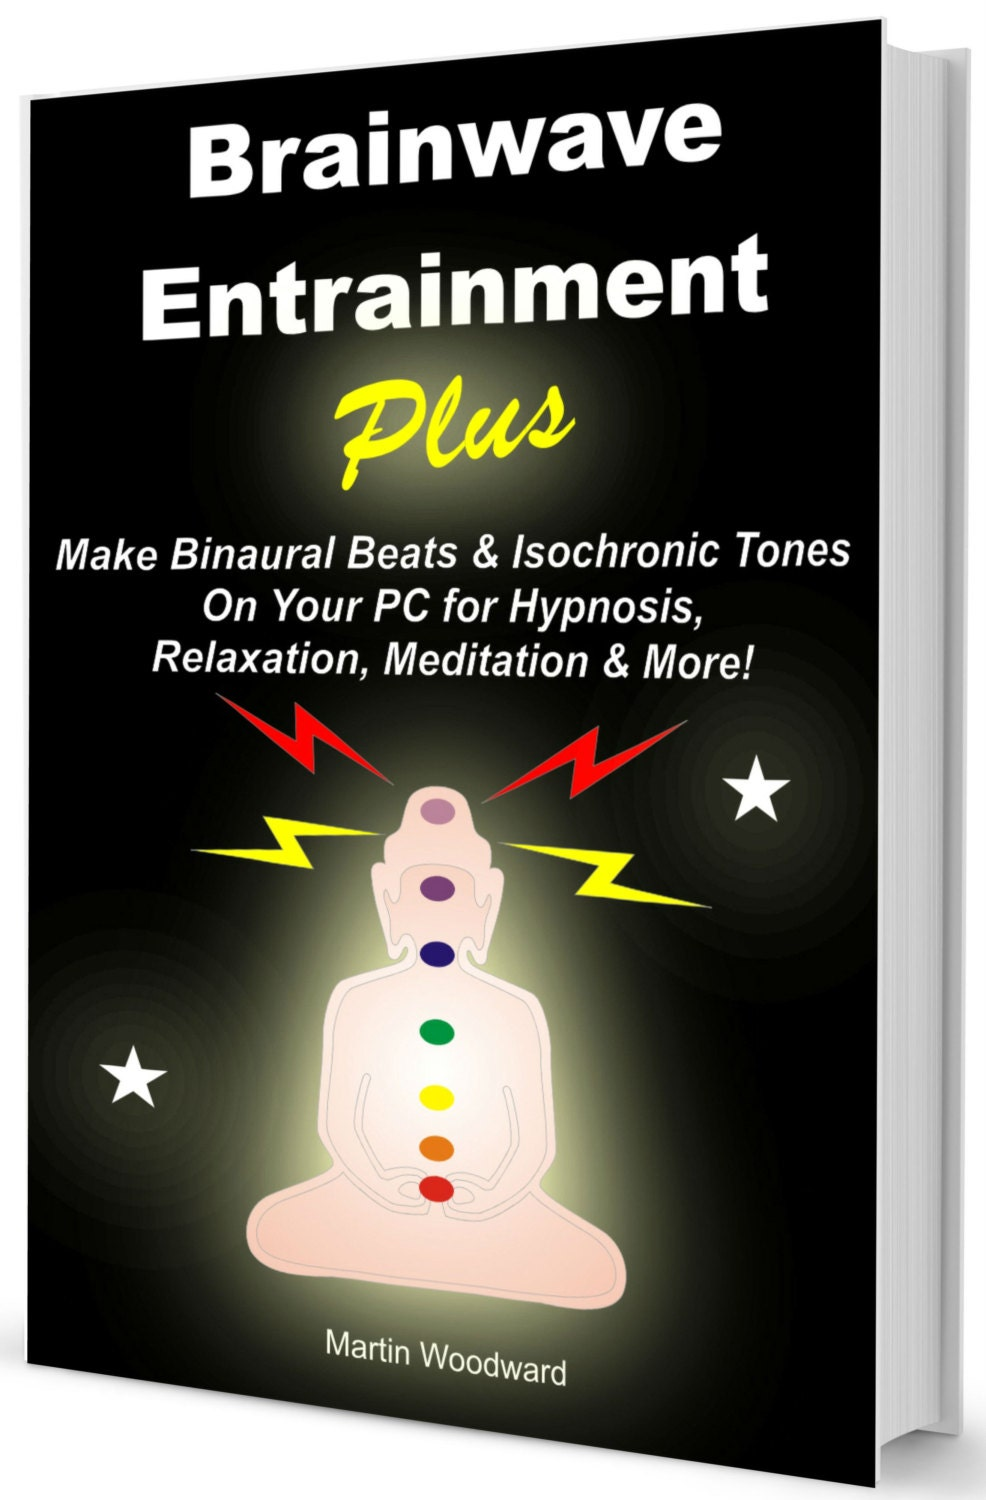 Binaural Beat Maker Plus - Make Binaural Beats on Your PC with Free  Software for Hypnosis, Relaxation, Meditation - inlcudes many freebies!